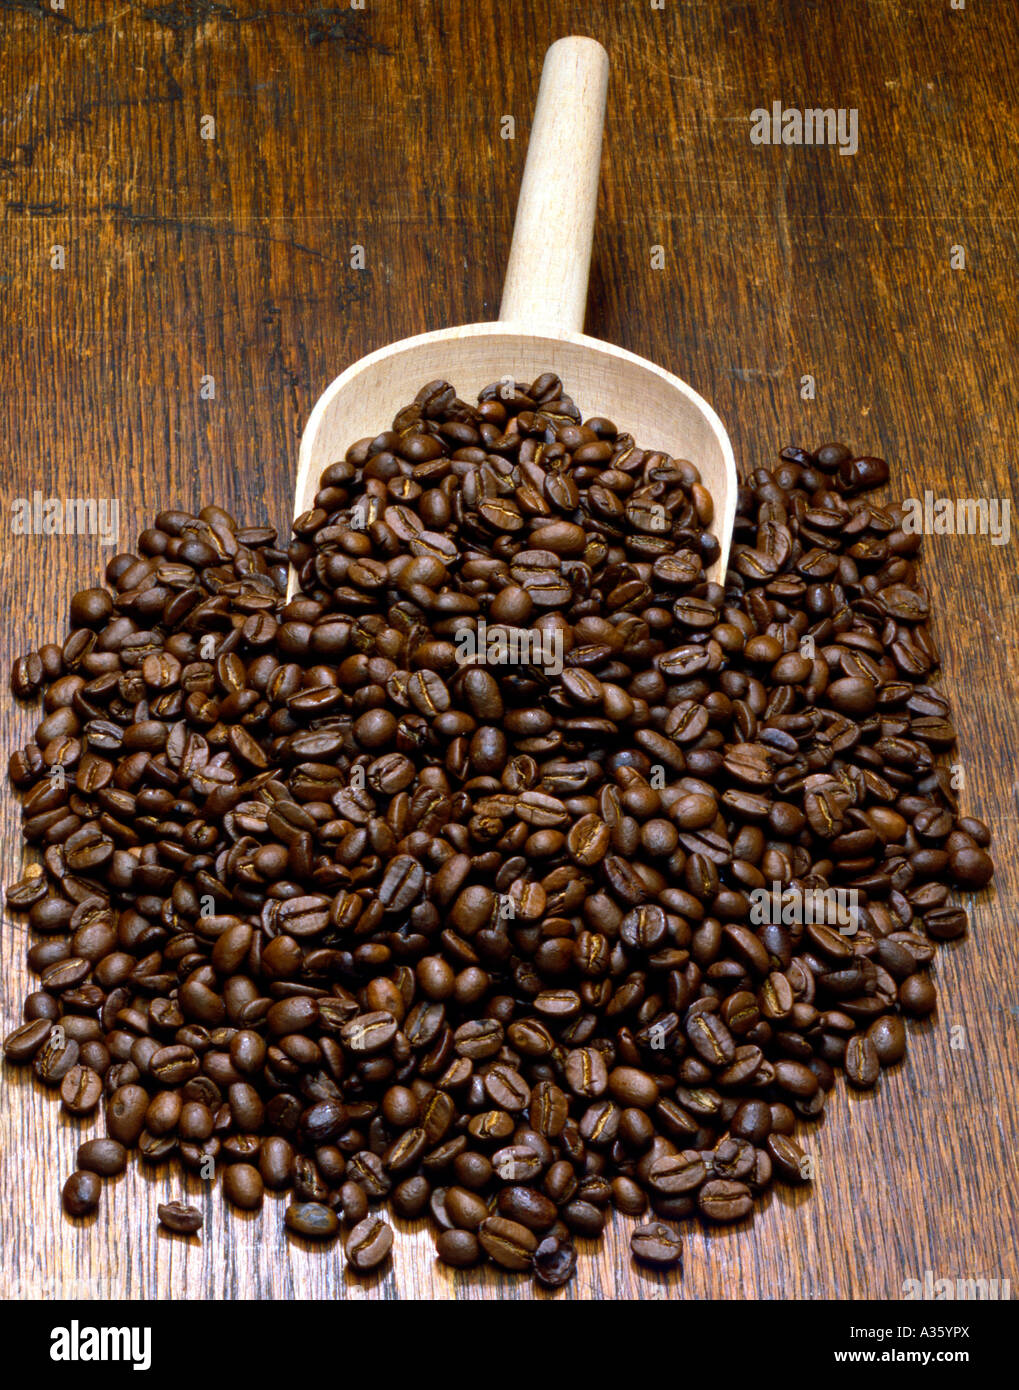 Geroestete Kaffeebohnen, roasted coffee beans - Stock Image